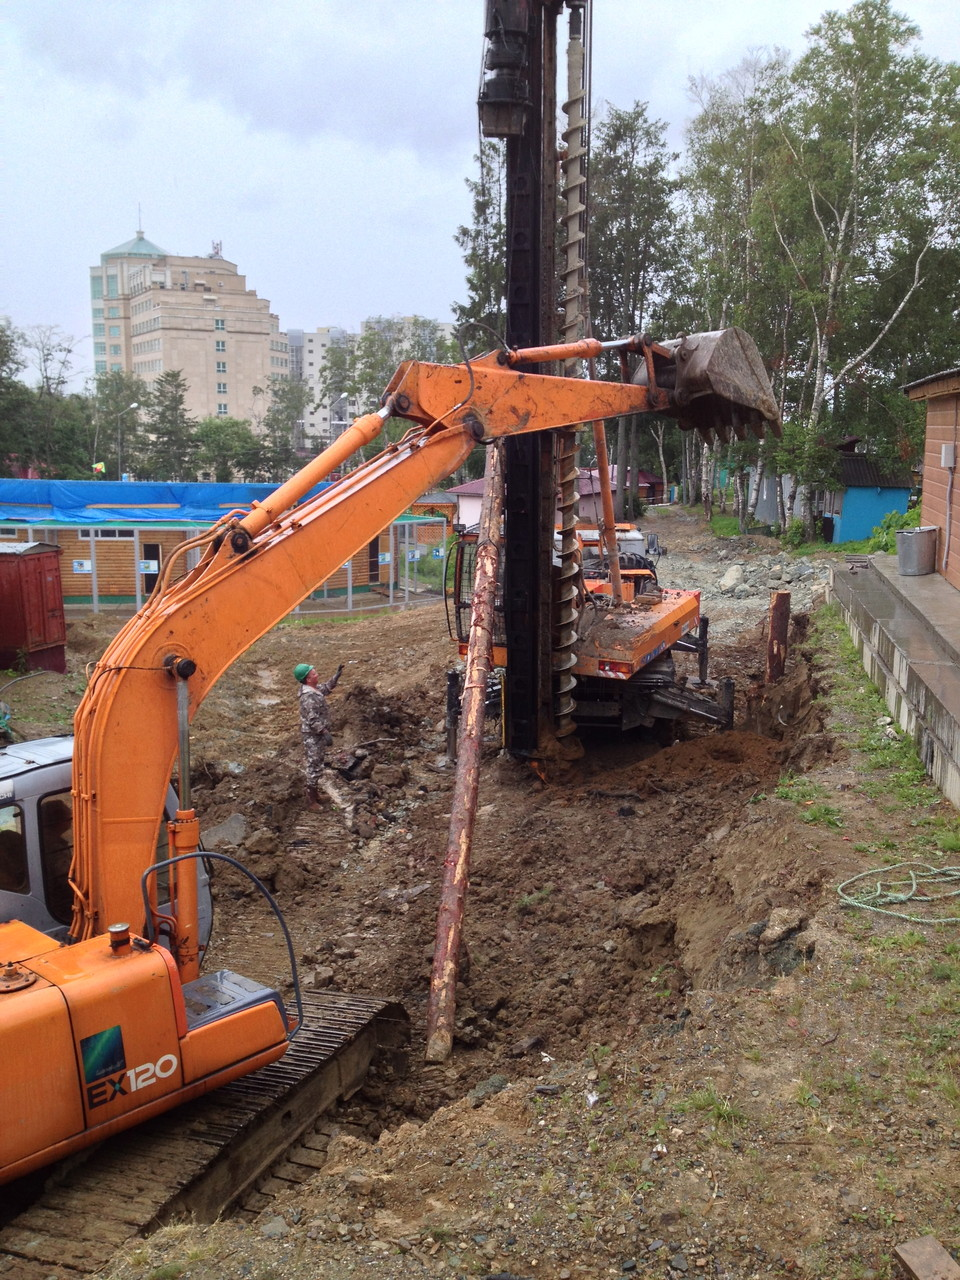 excavators liffting and installation to holes